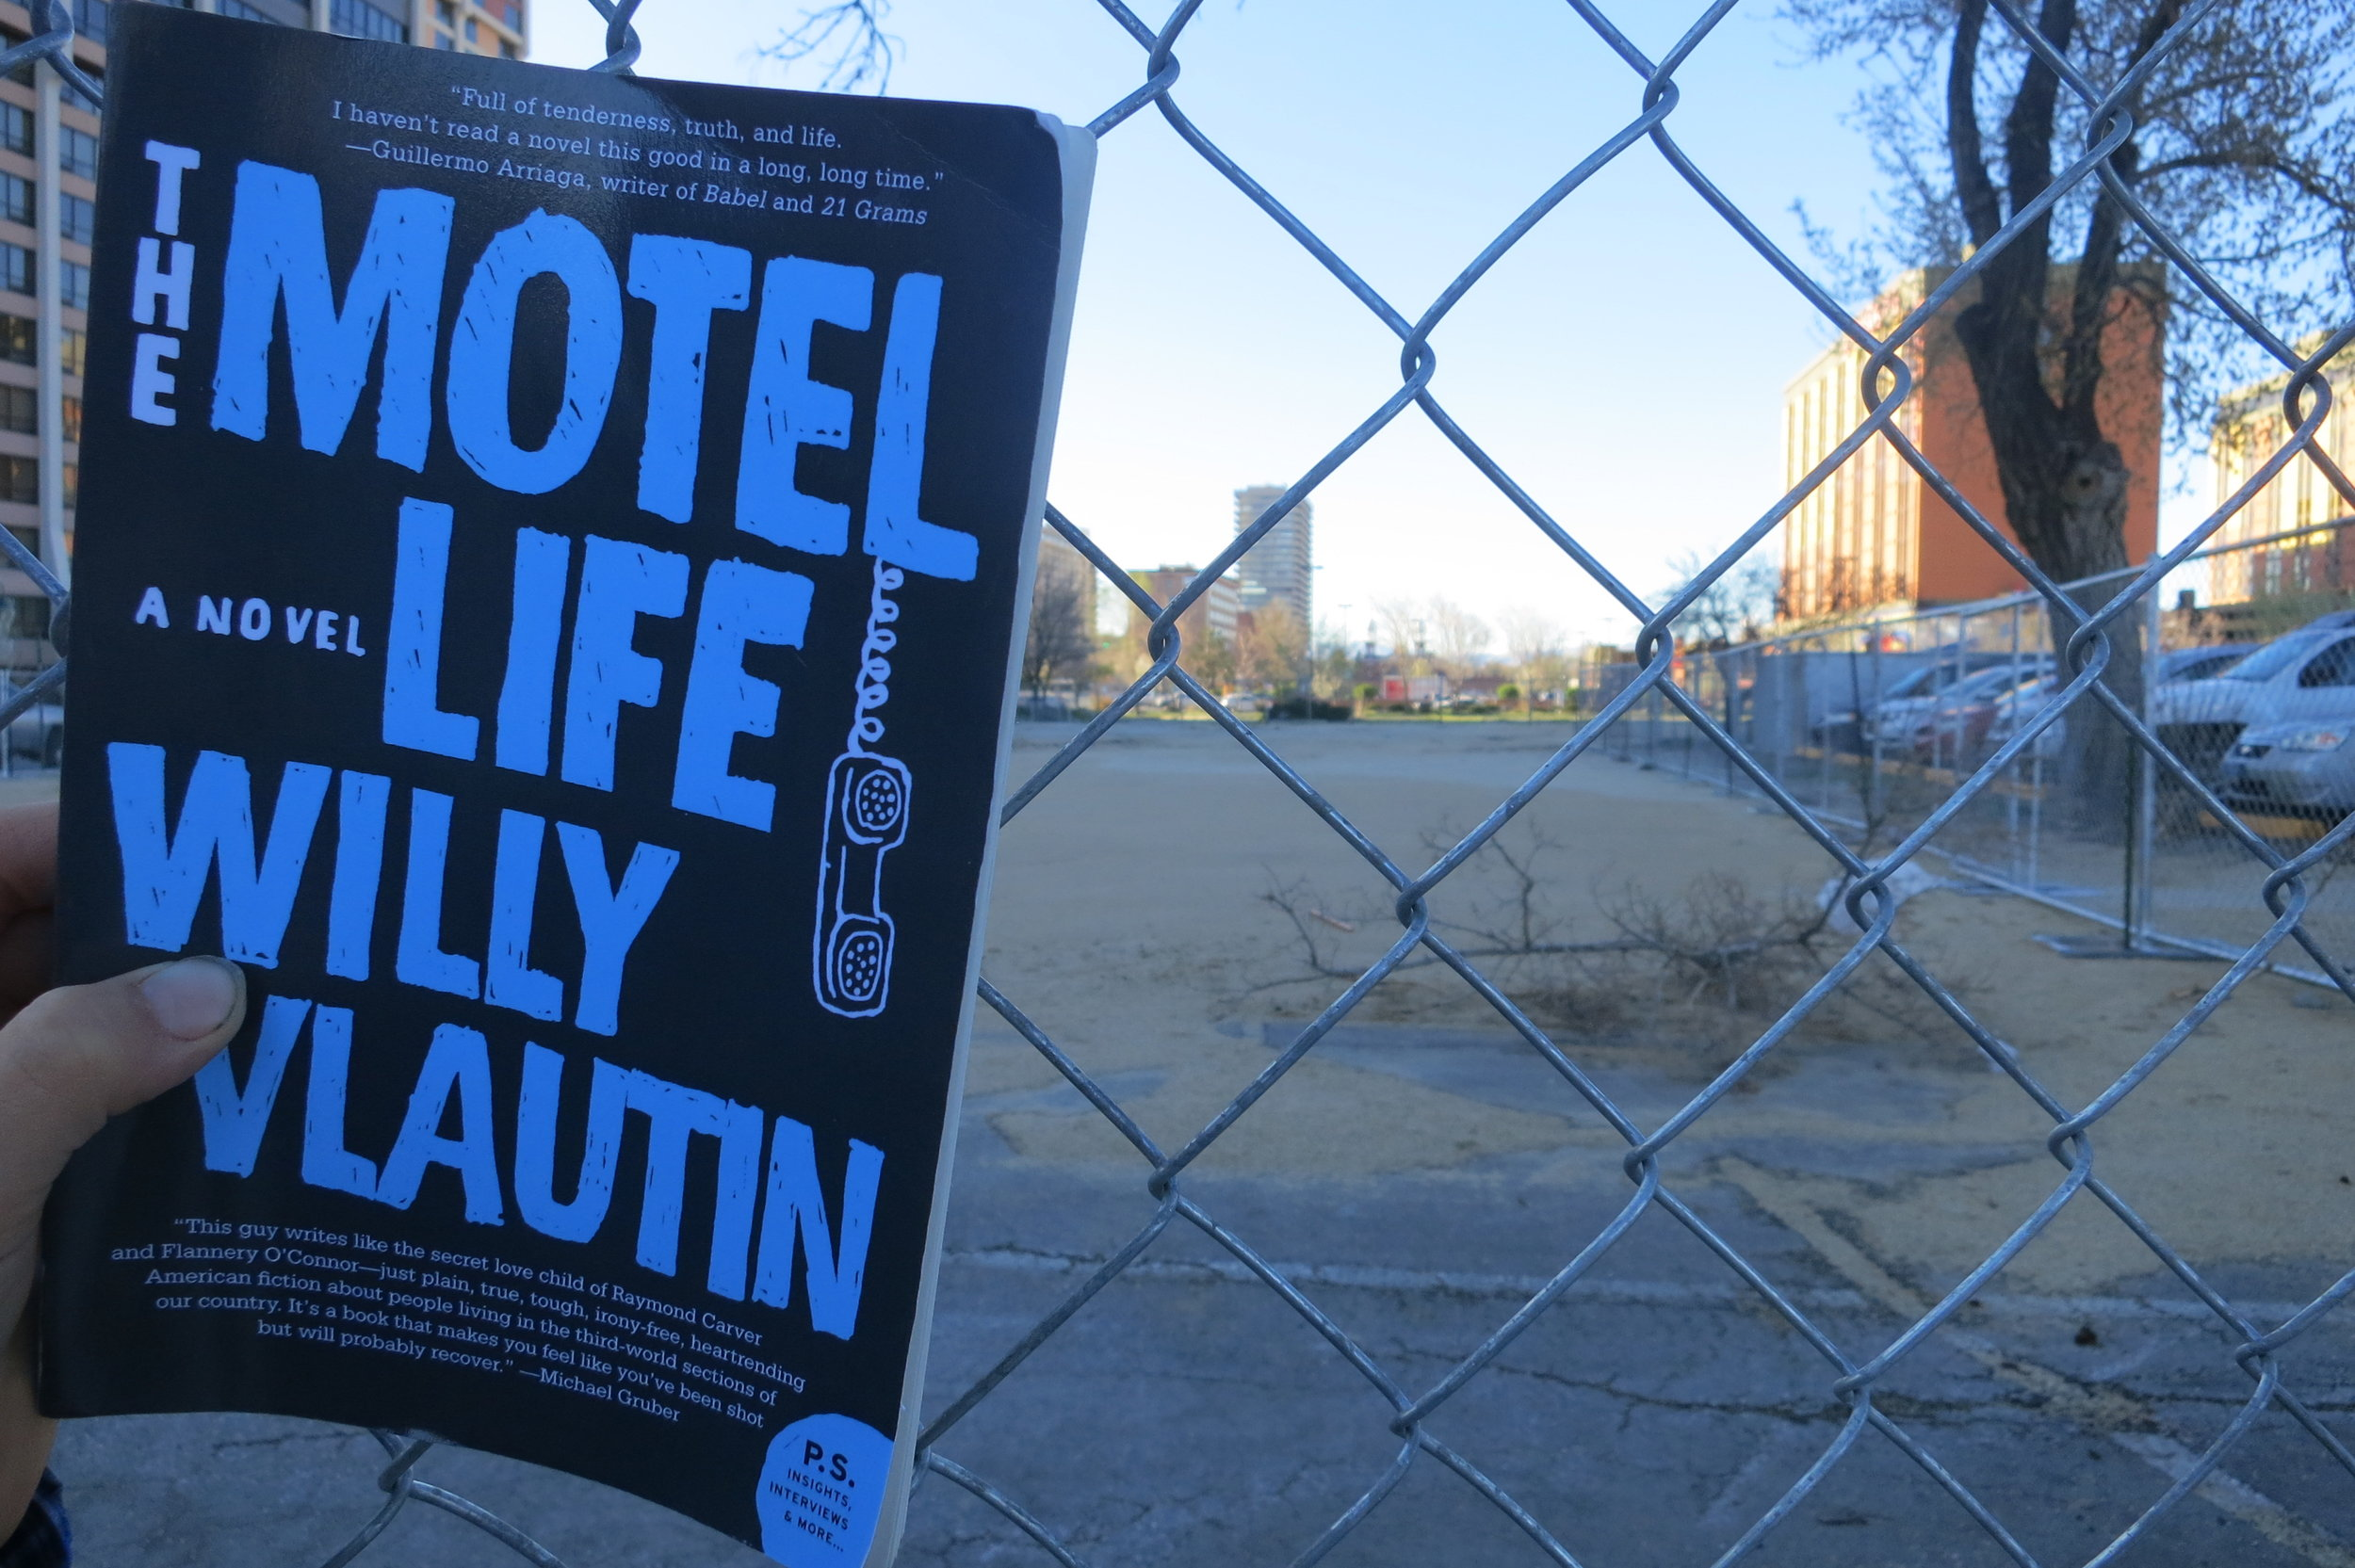 The Motel Life, the debut novel by Willy Vlautin, was published in 2006 at a time most motels were still up in downtown Reno. It's based on his own experiences growing up in the Biggest Little City. The book lives on, while the motels, which were the backdrop of his novel about brothers living on the margins, slowly disappear. Vlautin used to stay at the Stardust Lodge which is now just an empty lot.